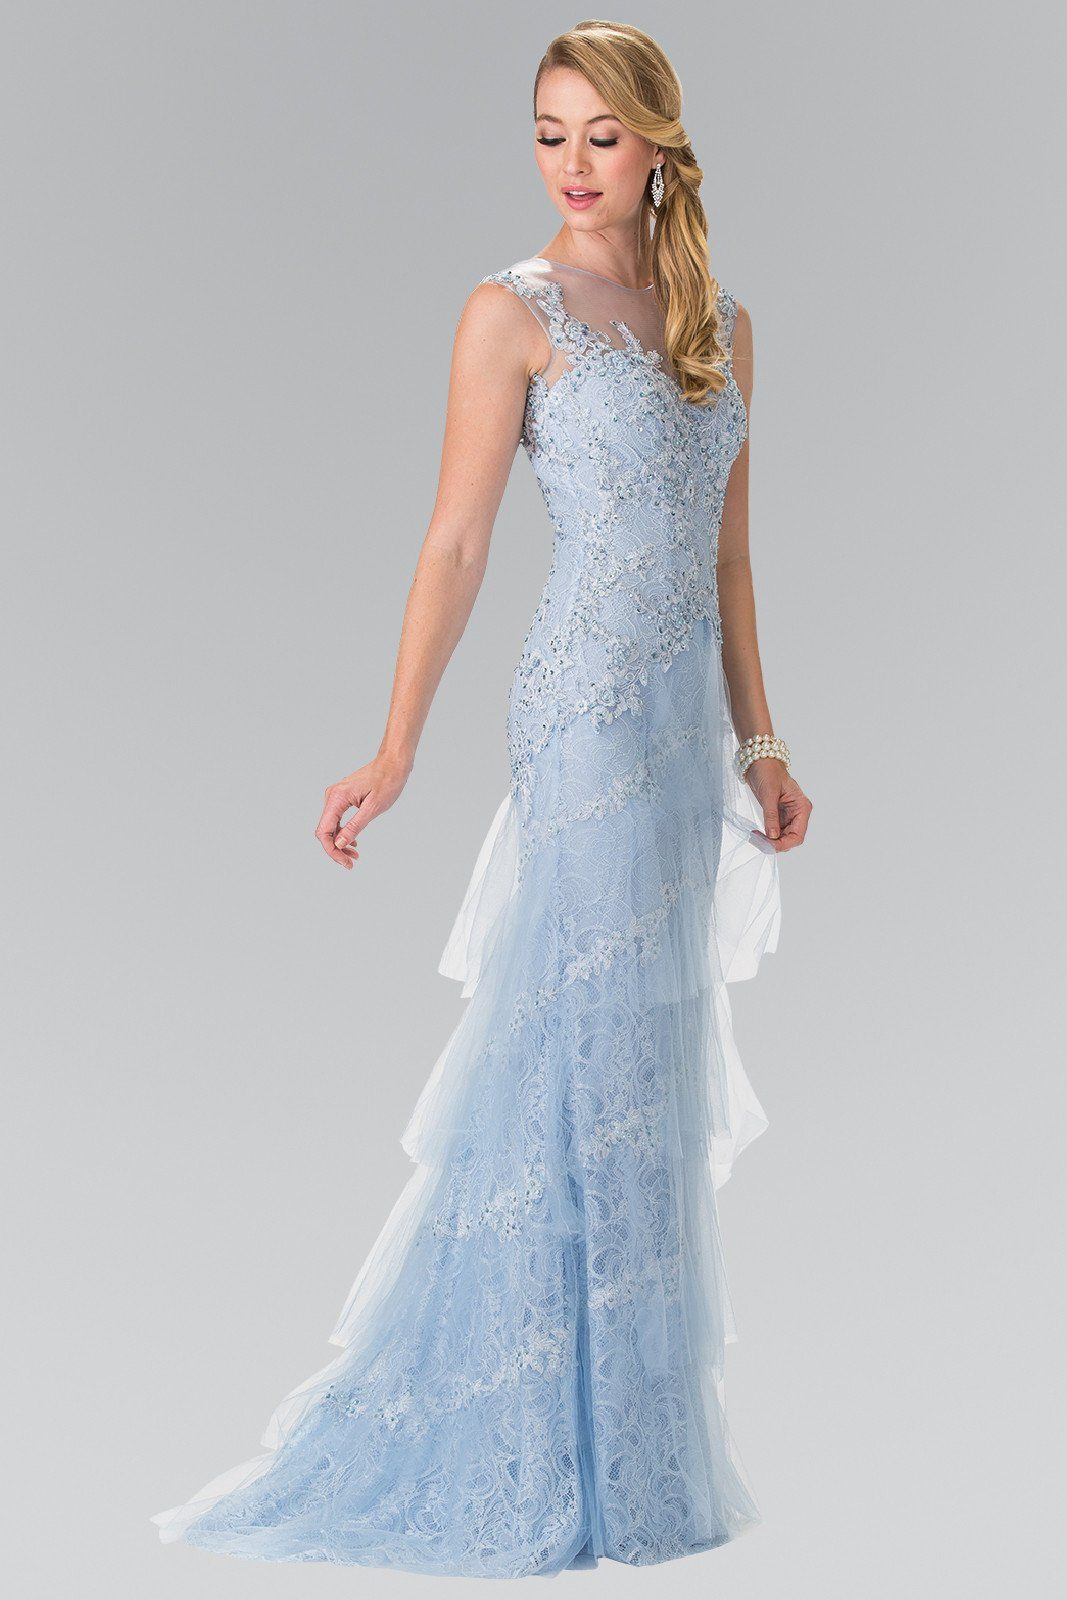 Lace Tulle Periwinkle Wedding Dress Gl2258 Simply Fab Dress